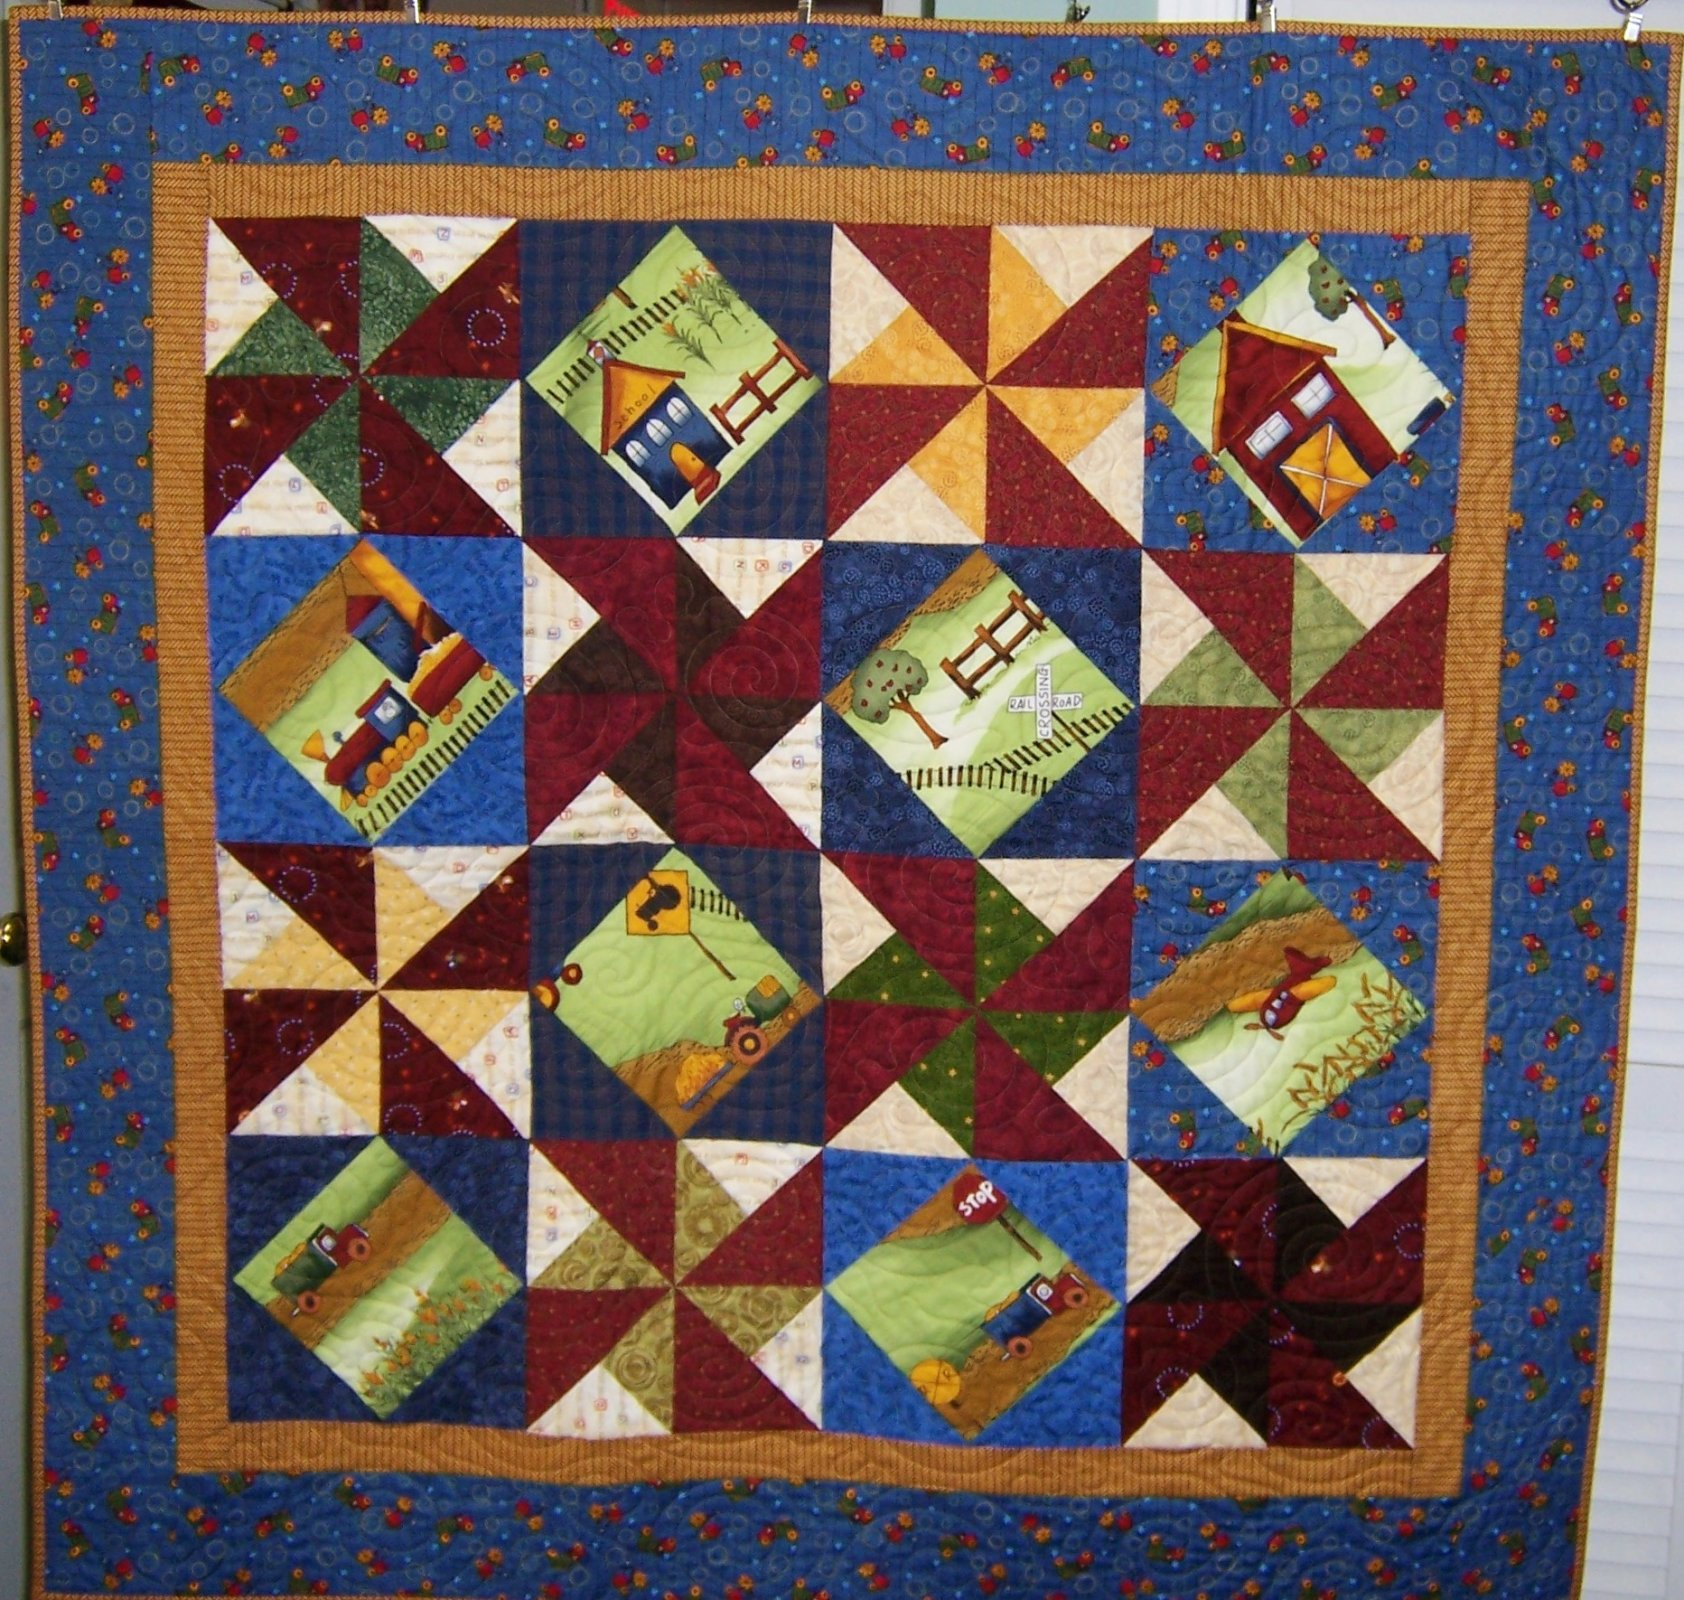 Rons' World Quilt